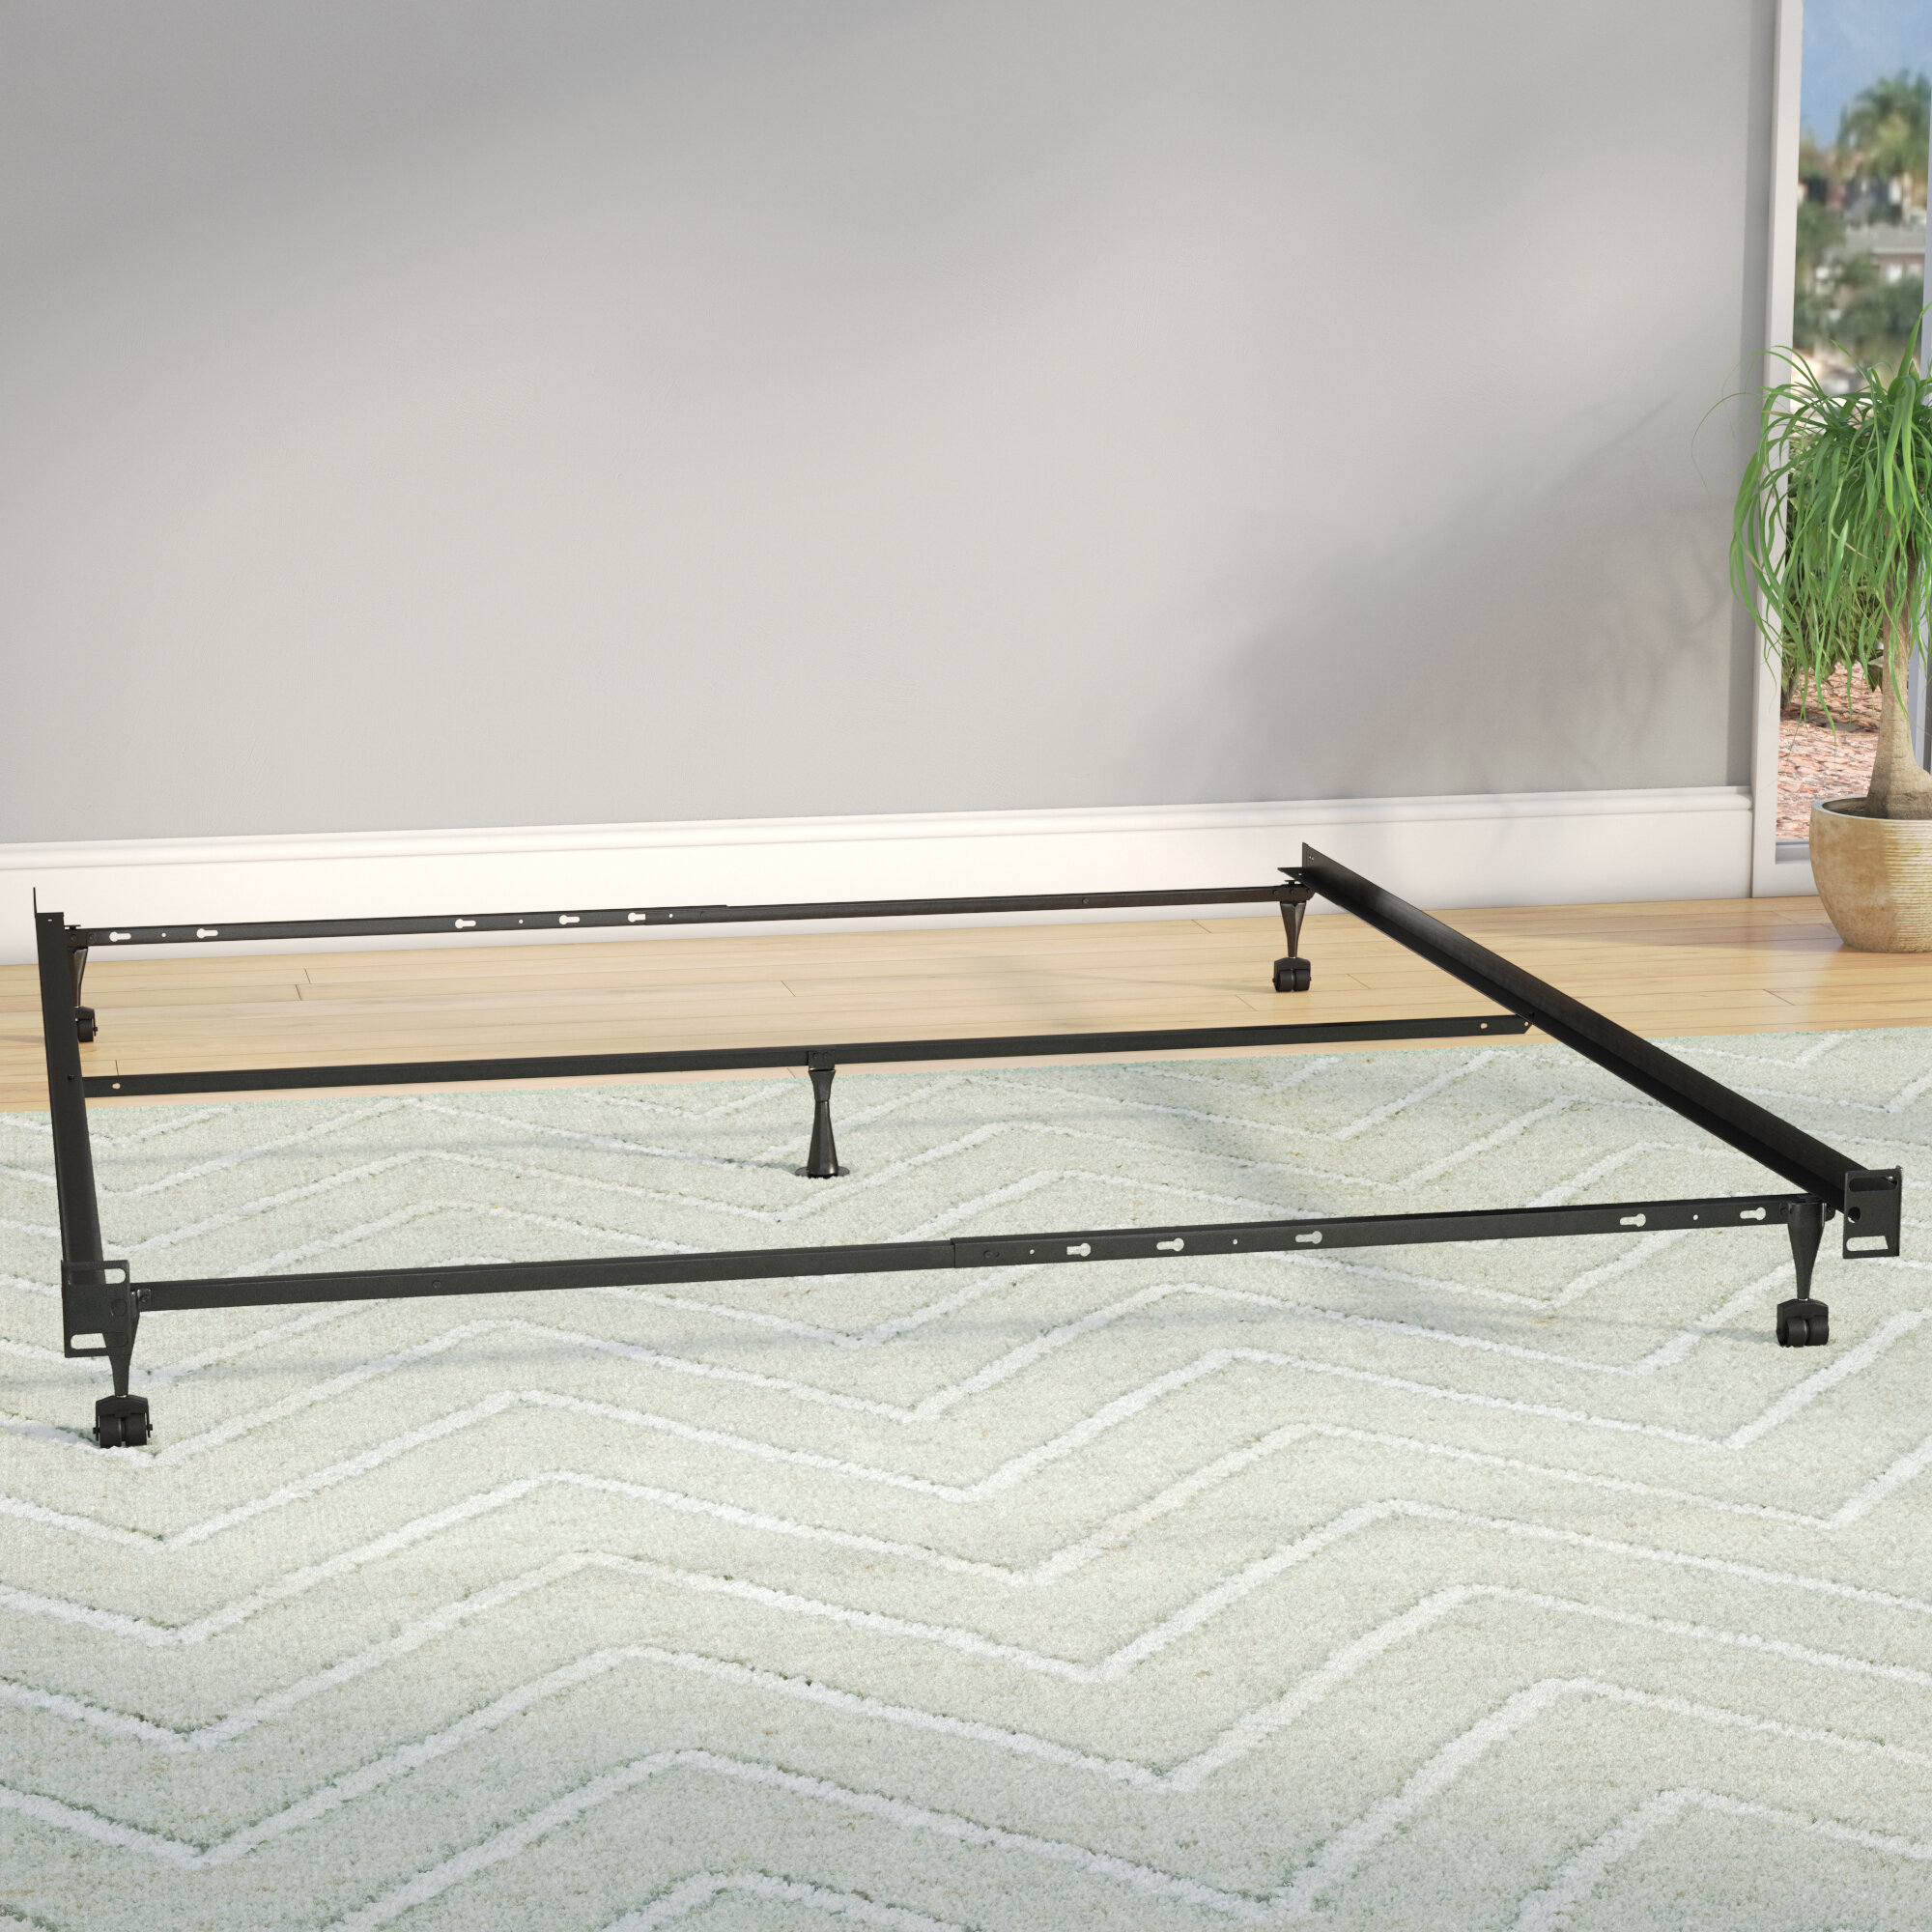 frame top amazing air image featured mattress myinflatablebed in you should com try frames that